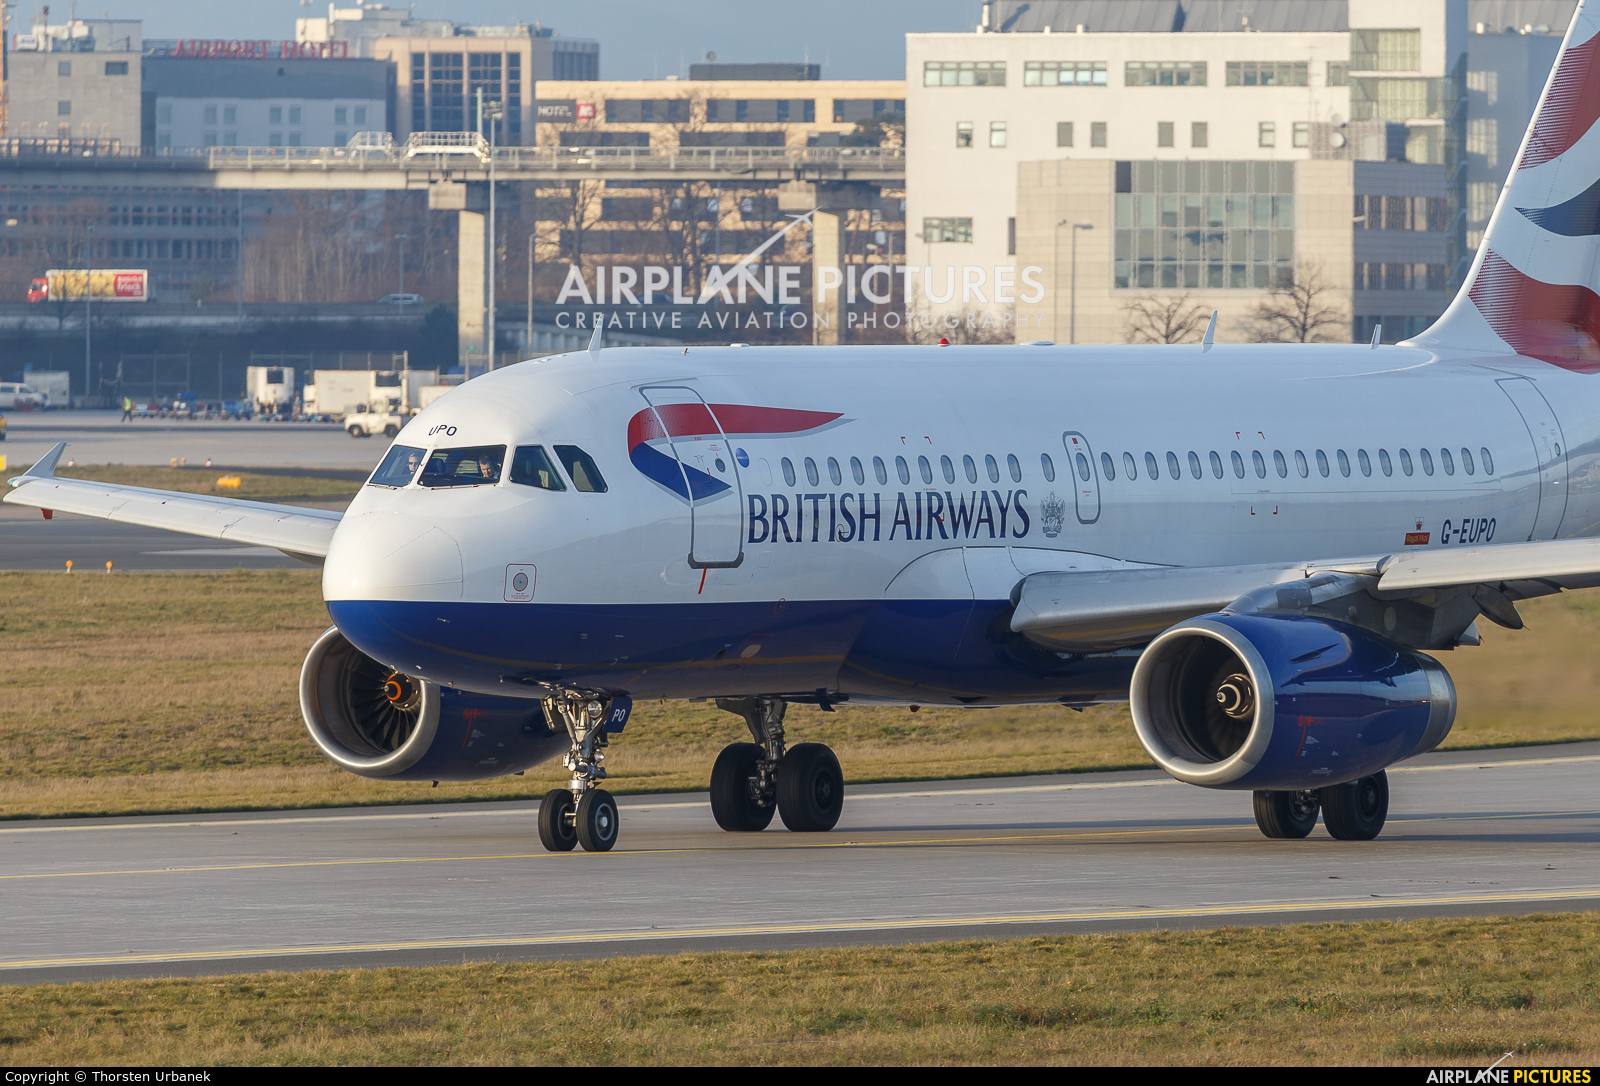 British Airways G-EUPO aircraft at Frankfurt